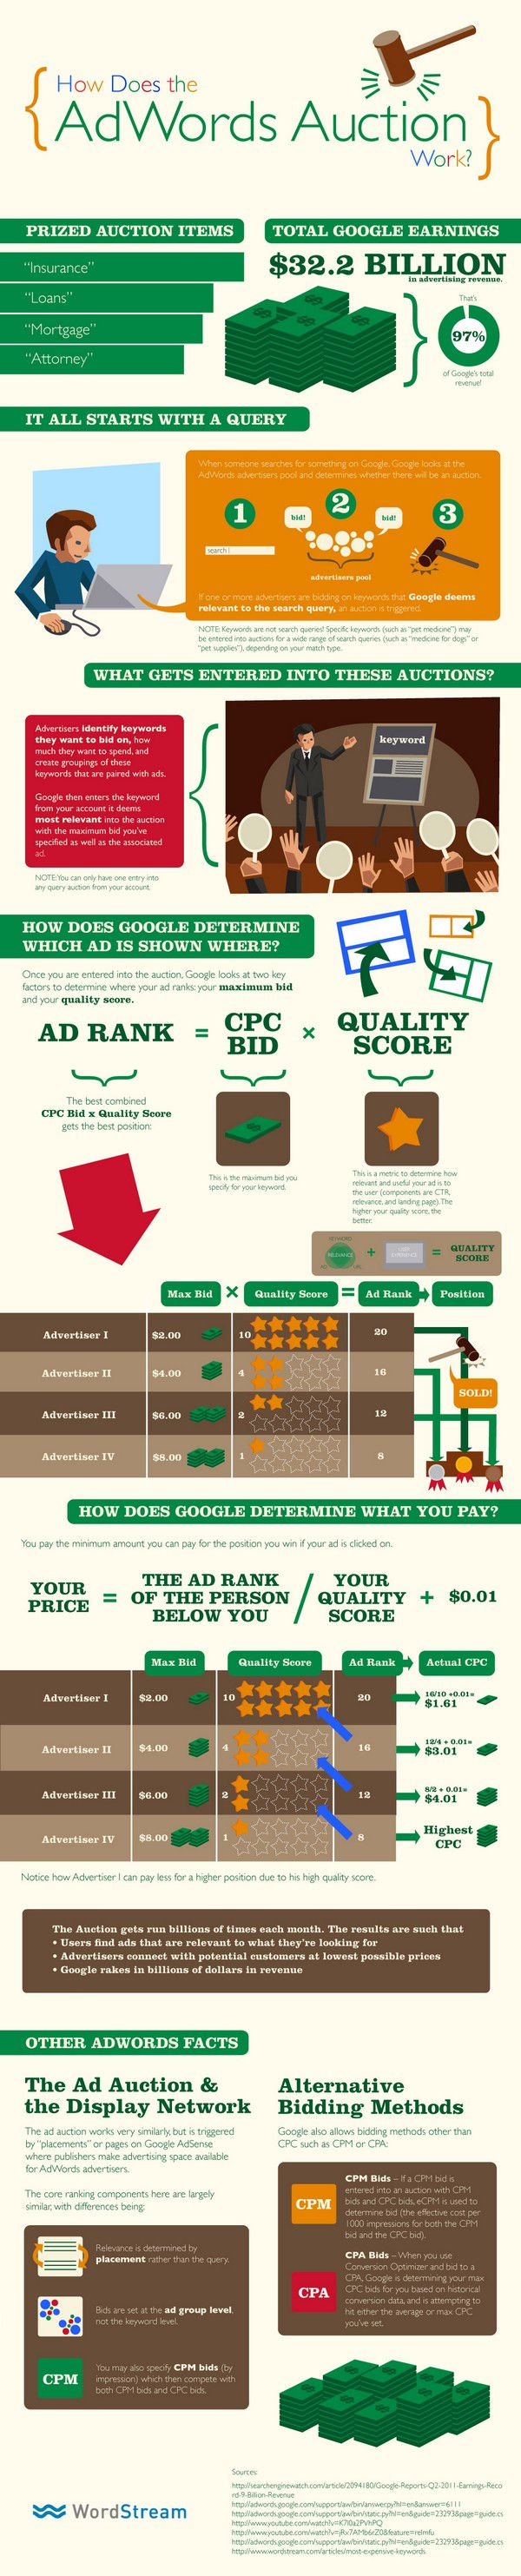 How Does the AdWords Auction Work? [Infographic]